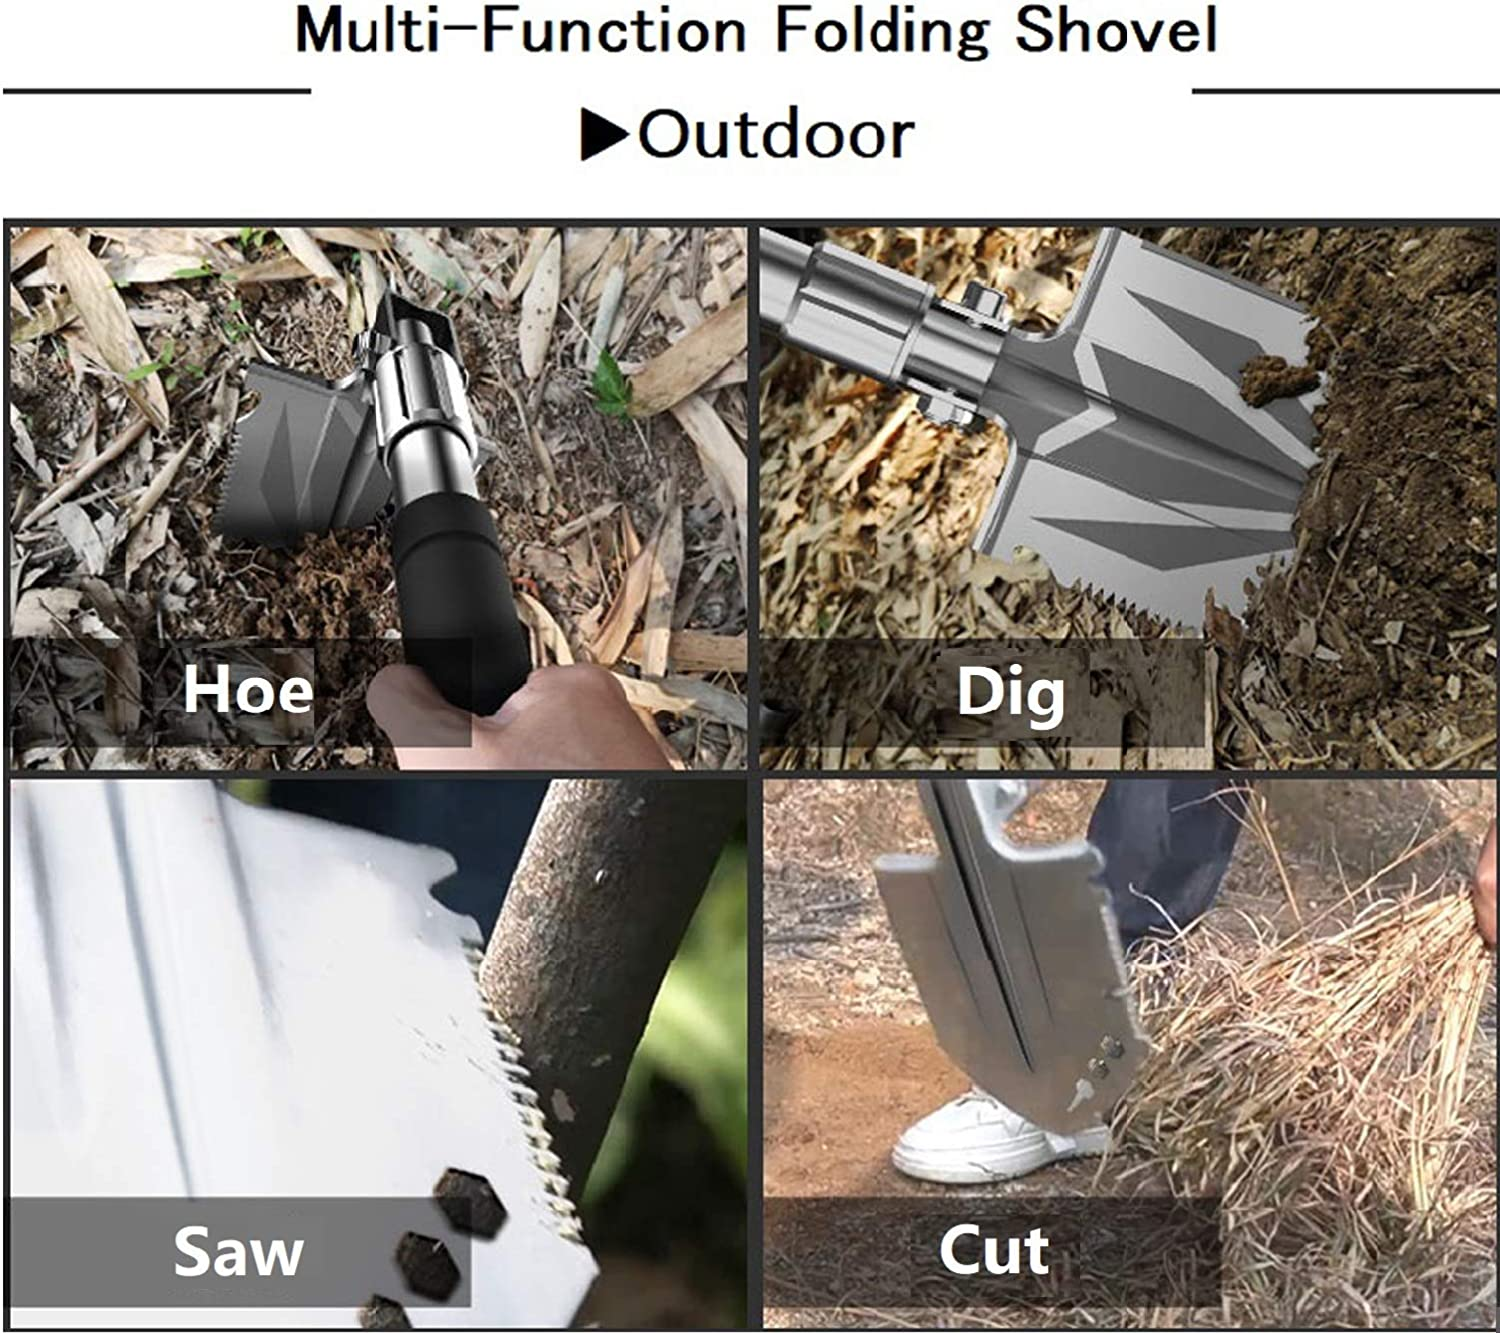 Gardening Snow Backpacking Outdoor Survival Portable with Cover for Hiking Folding Shovel Tool for Car Emergency Beach,Fishing SUPER-ELE Camping Shovel B